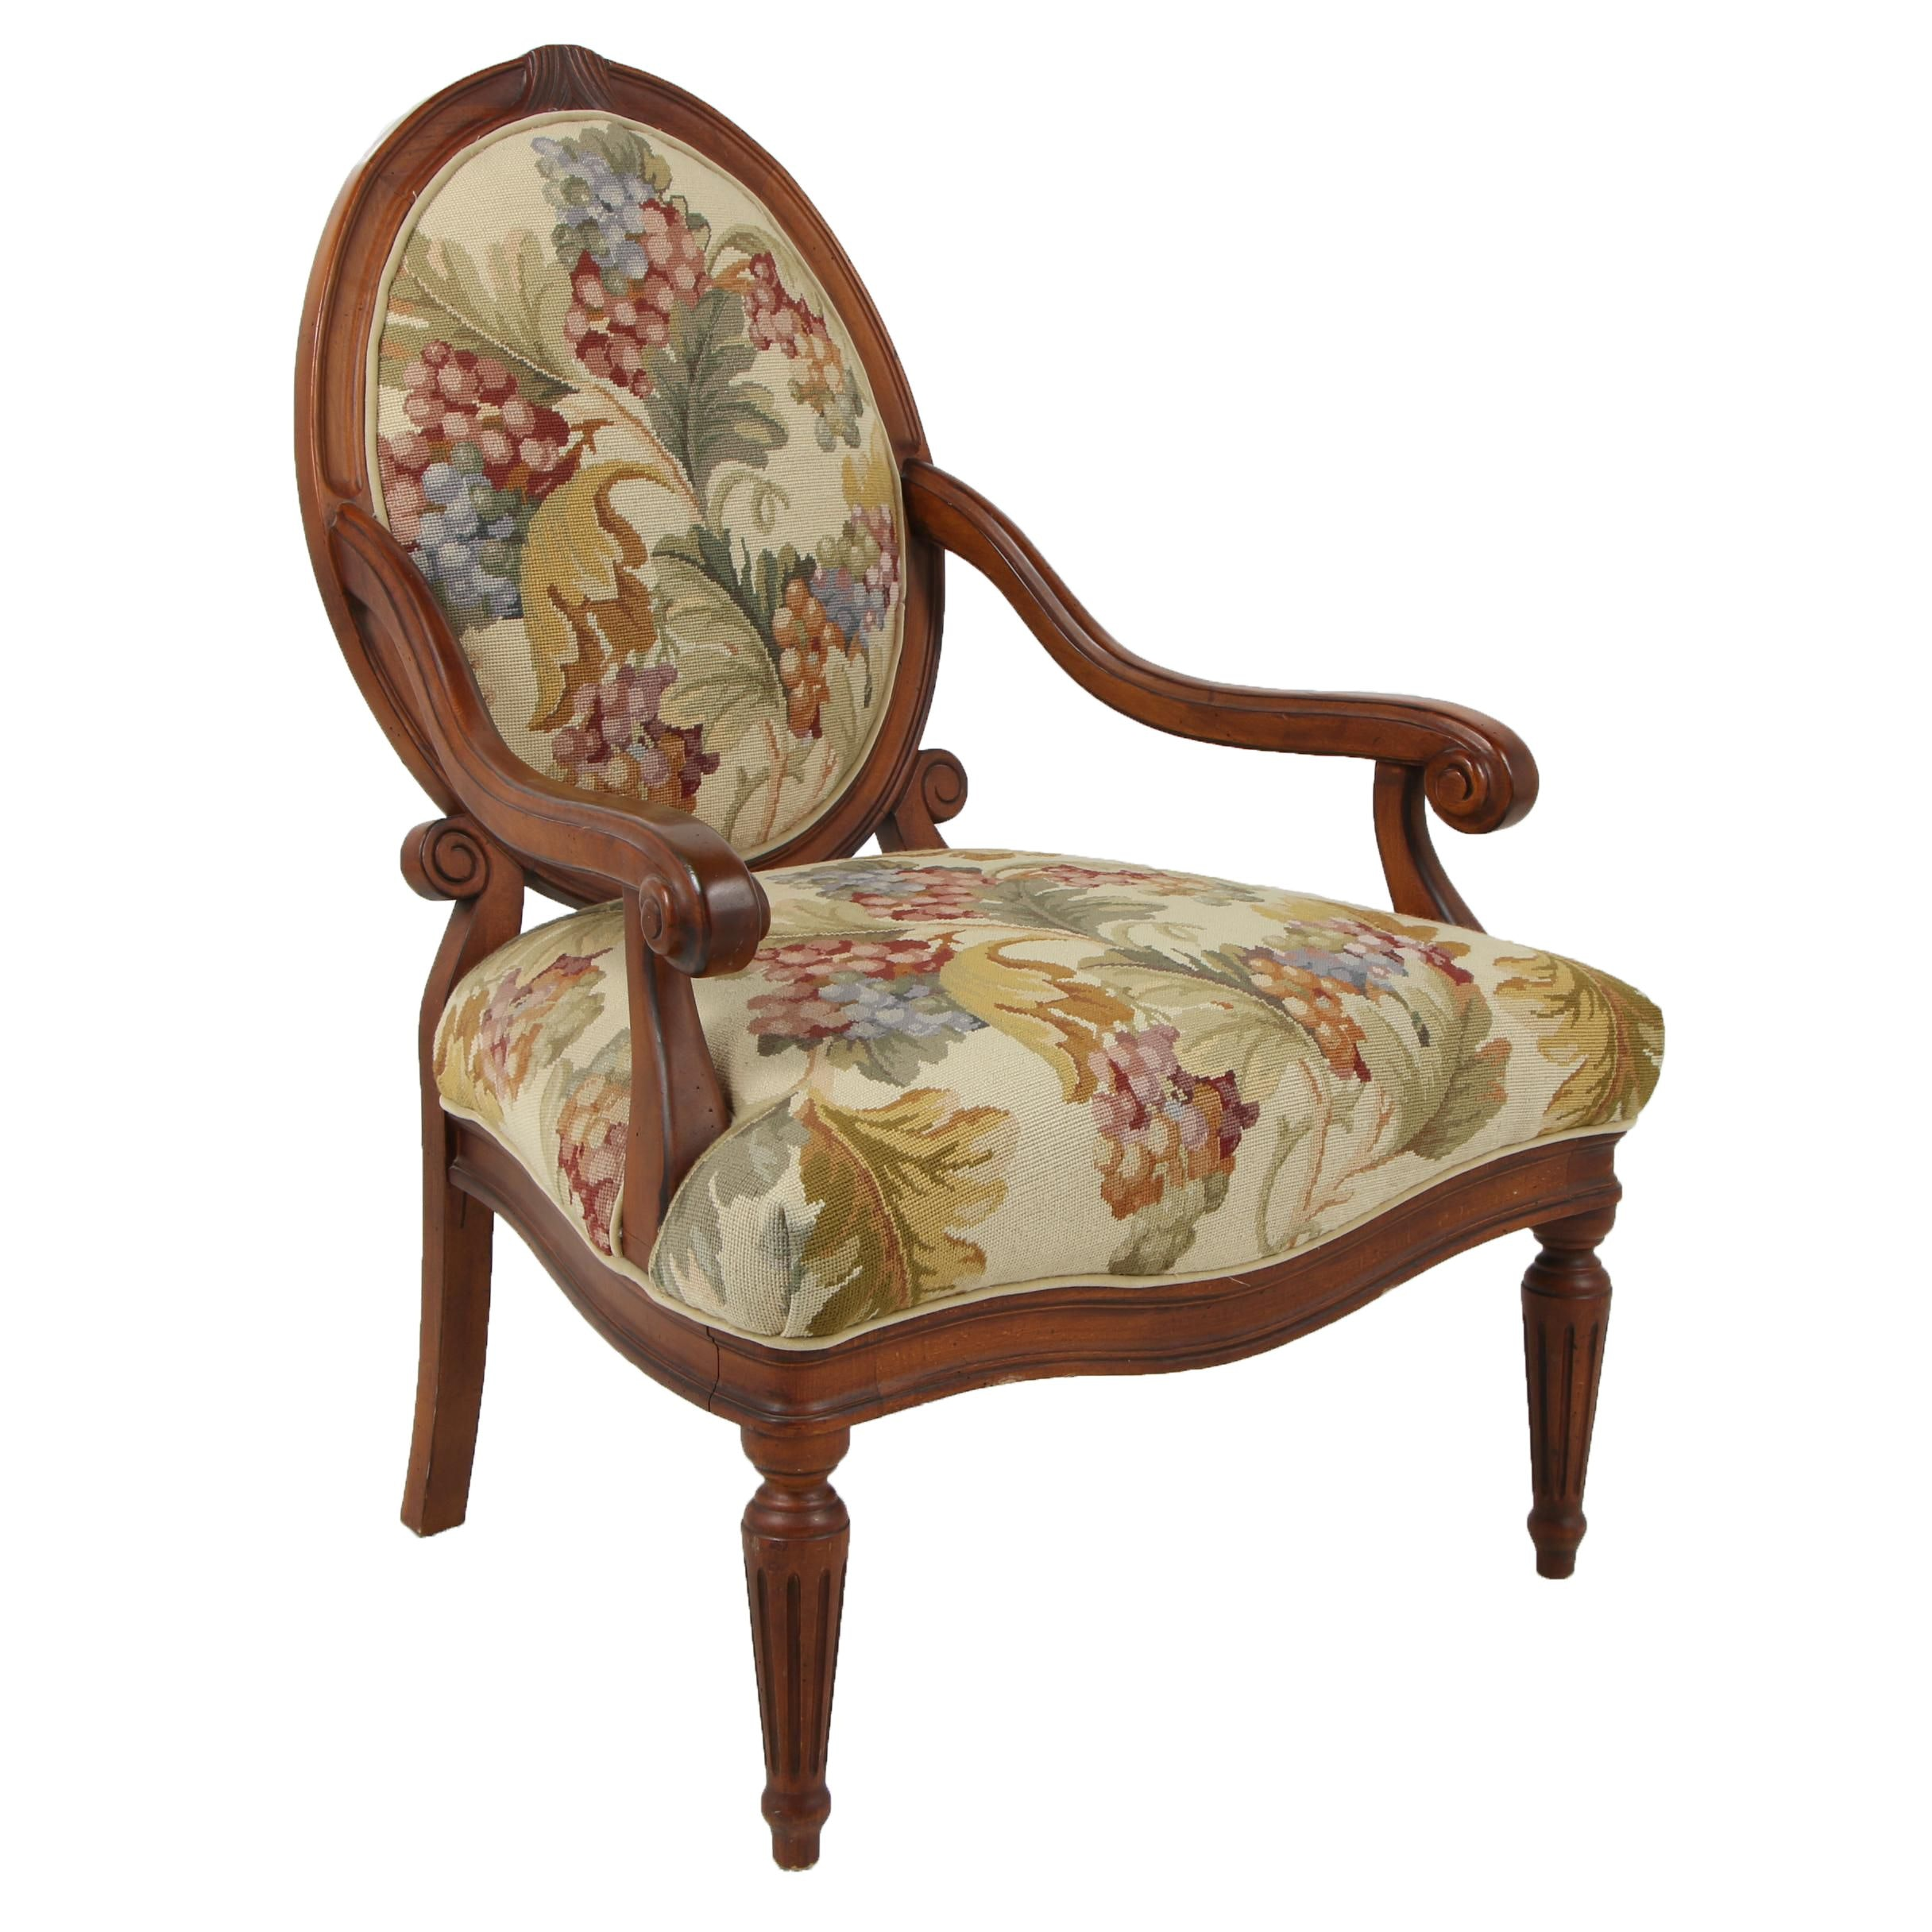 Louis XVI Needlepoint Upholstered Armchair, Contemporary